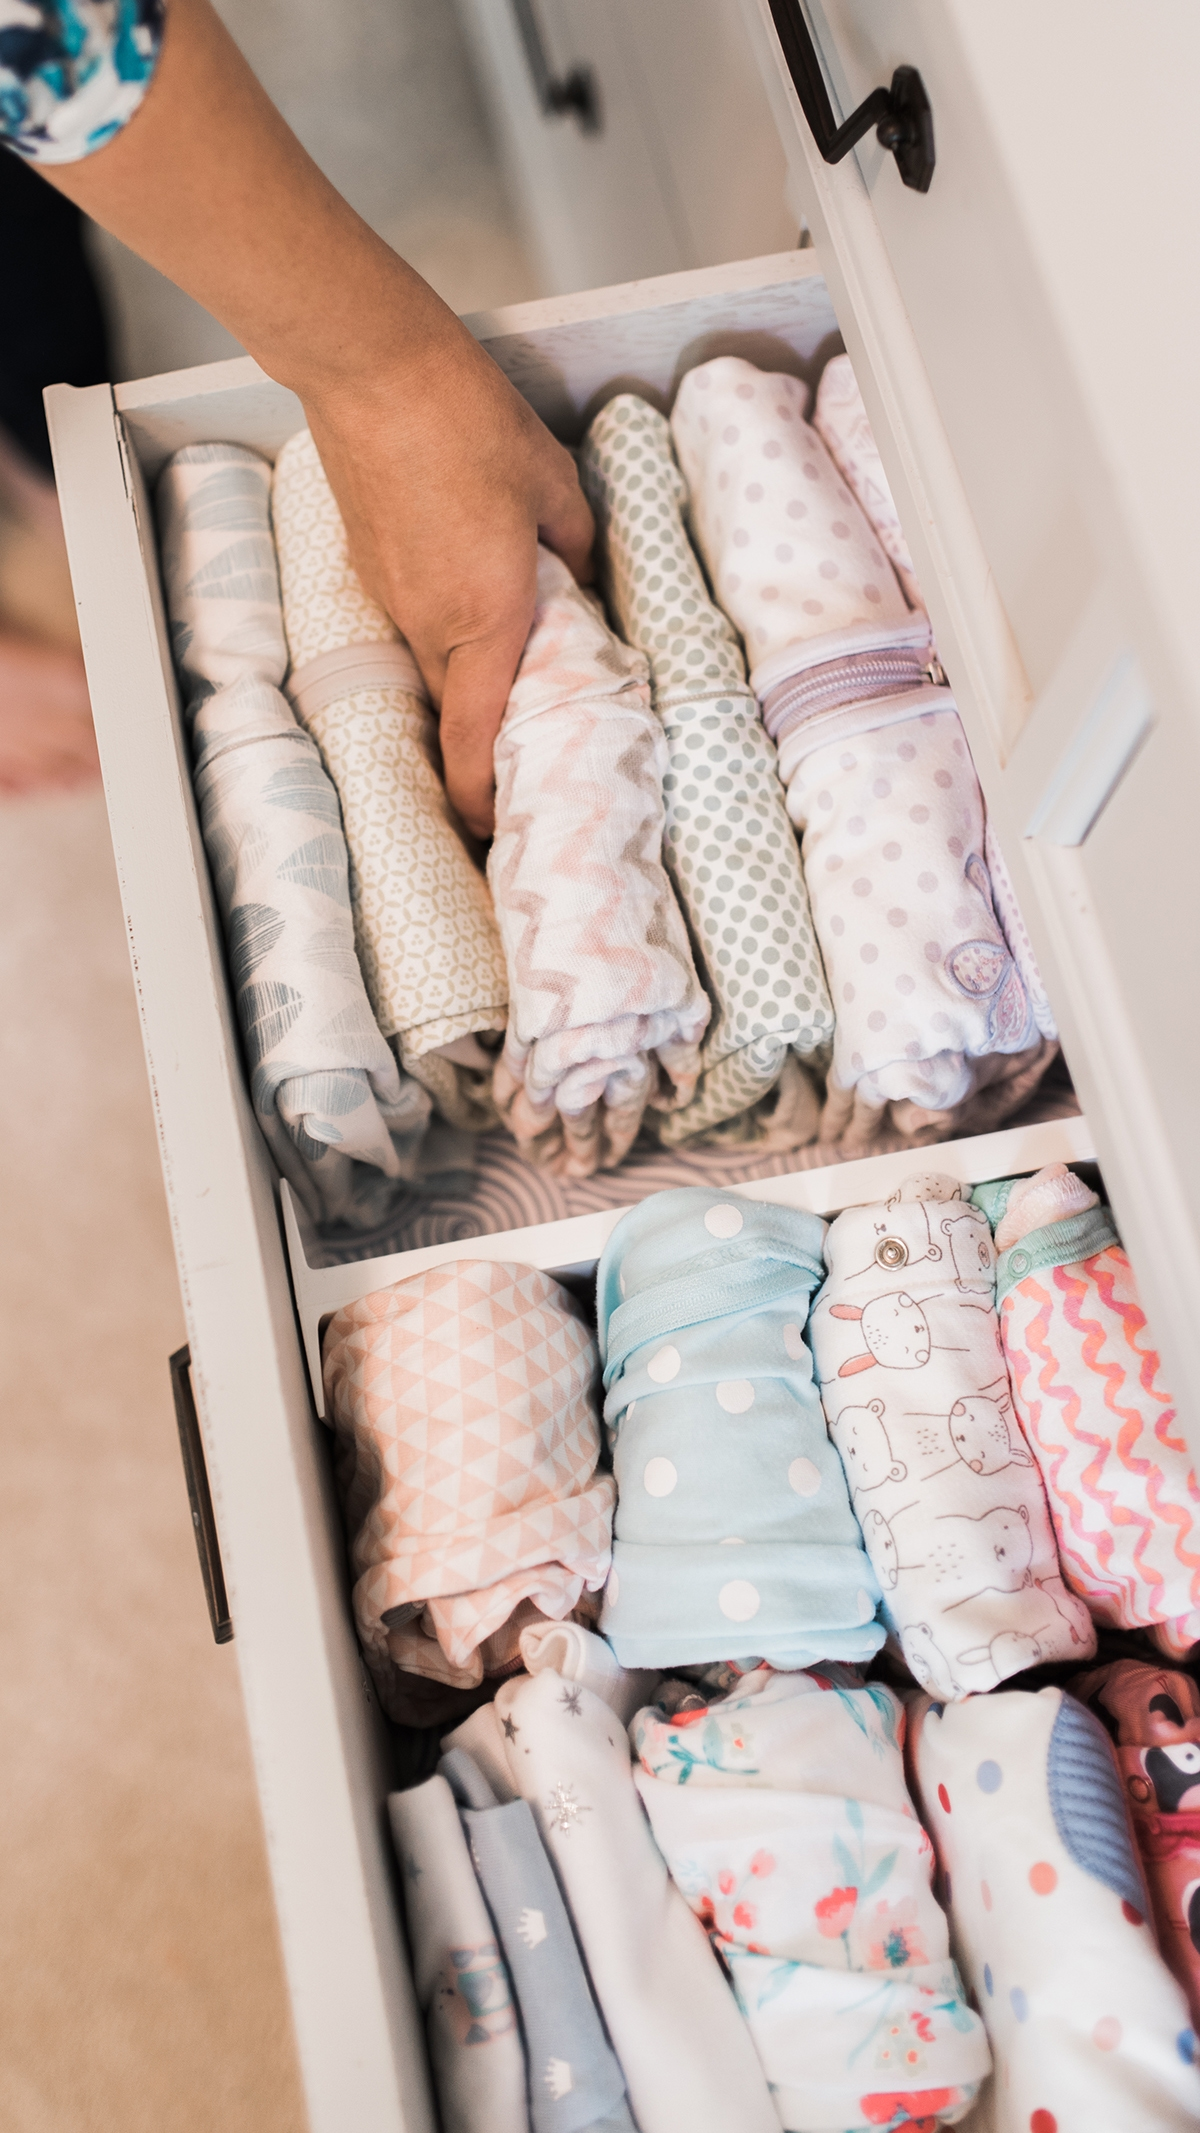 folded halo sleepsacks and other baby clothes organized in drawers